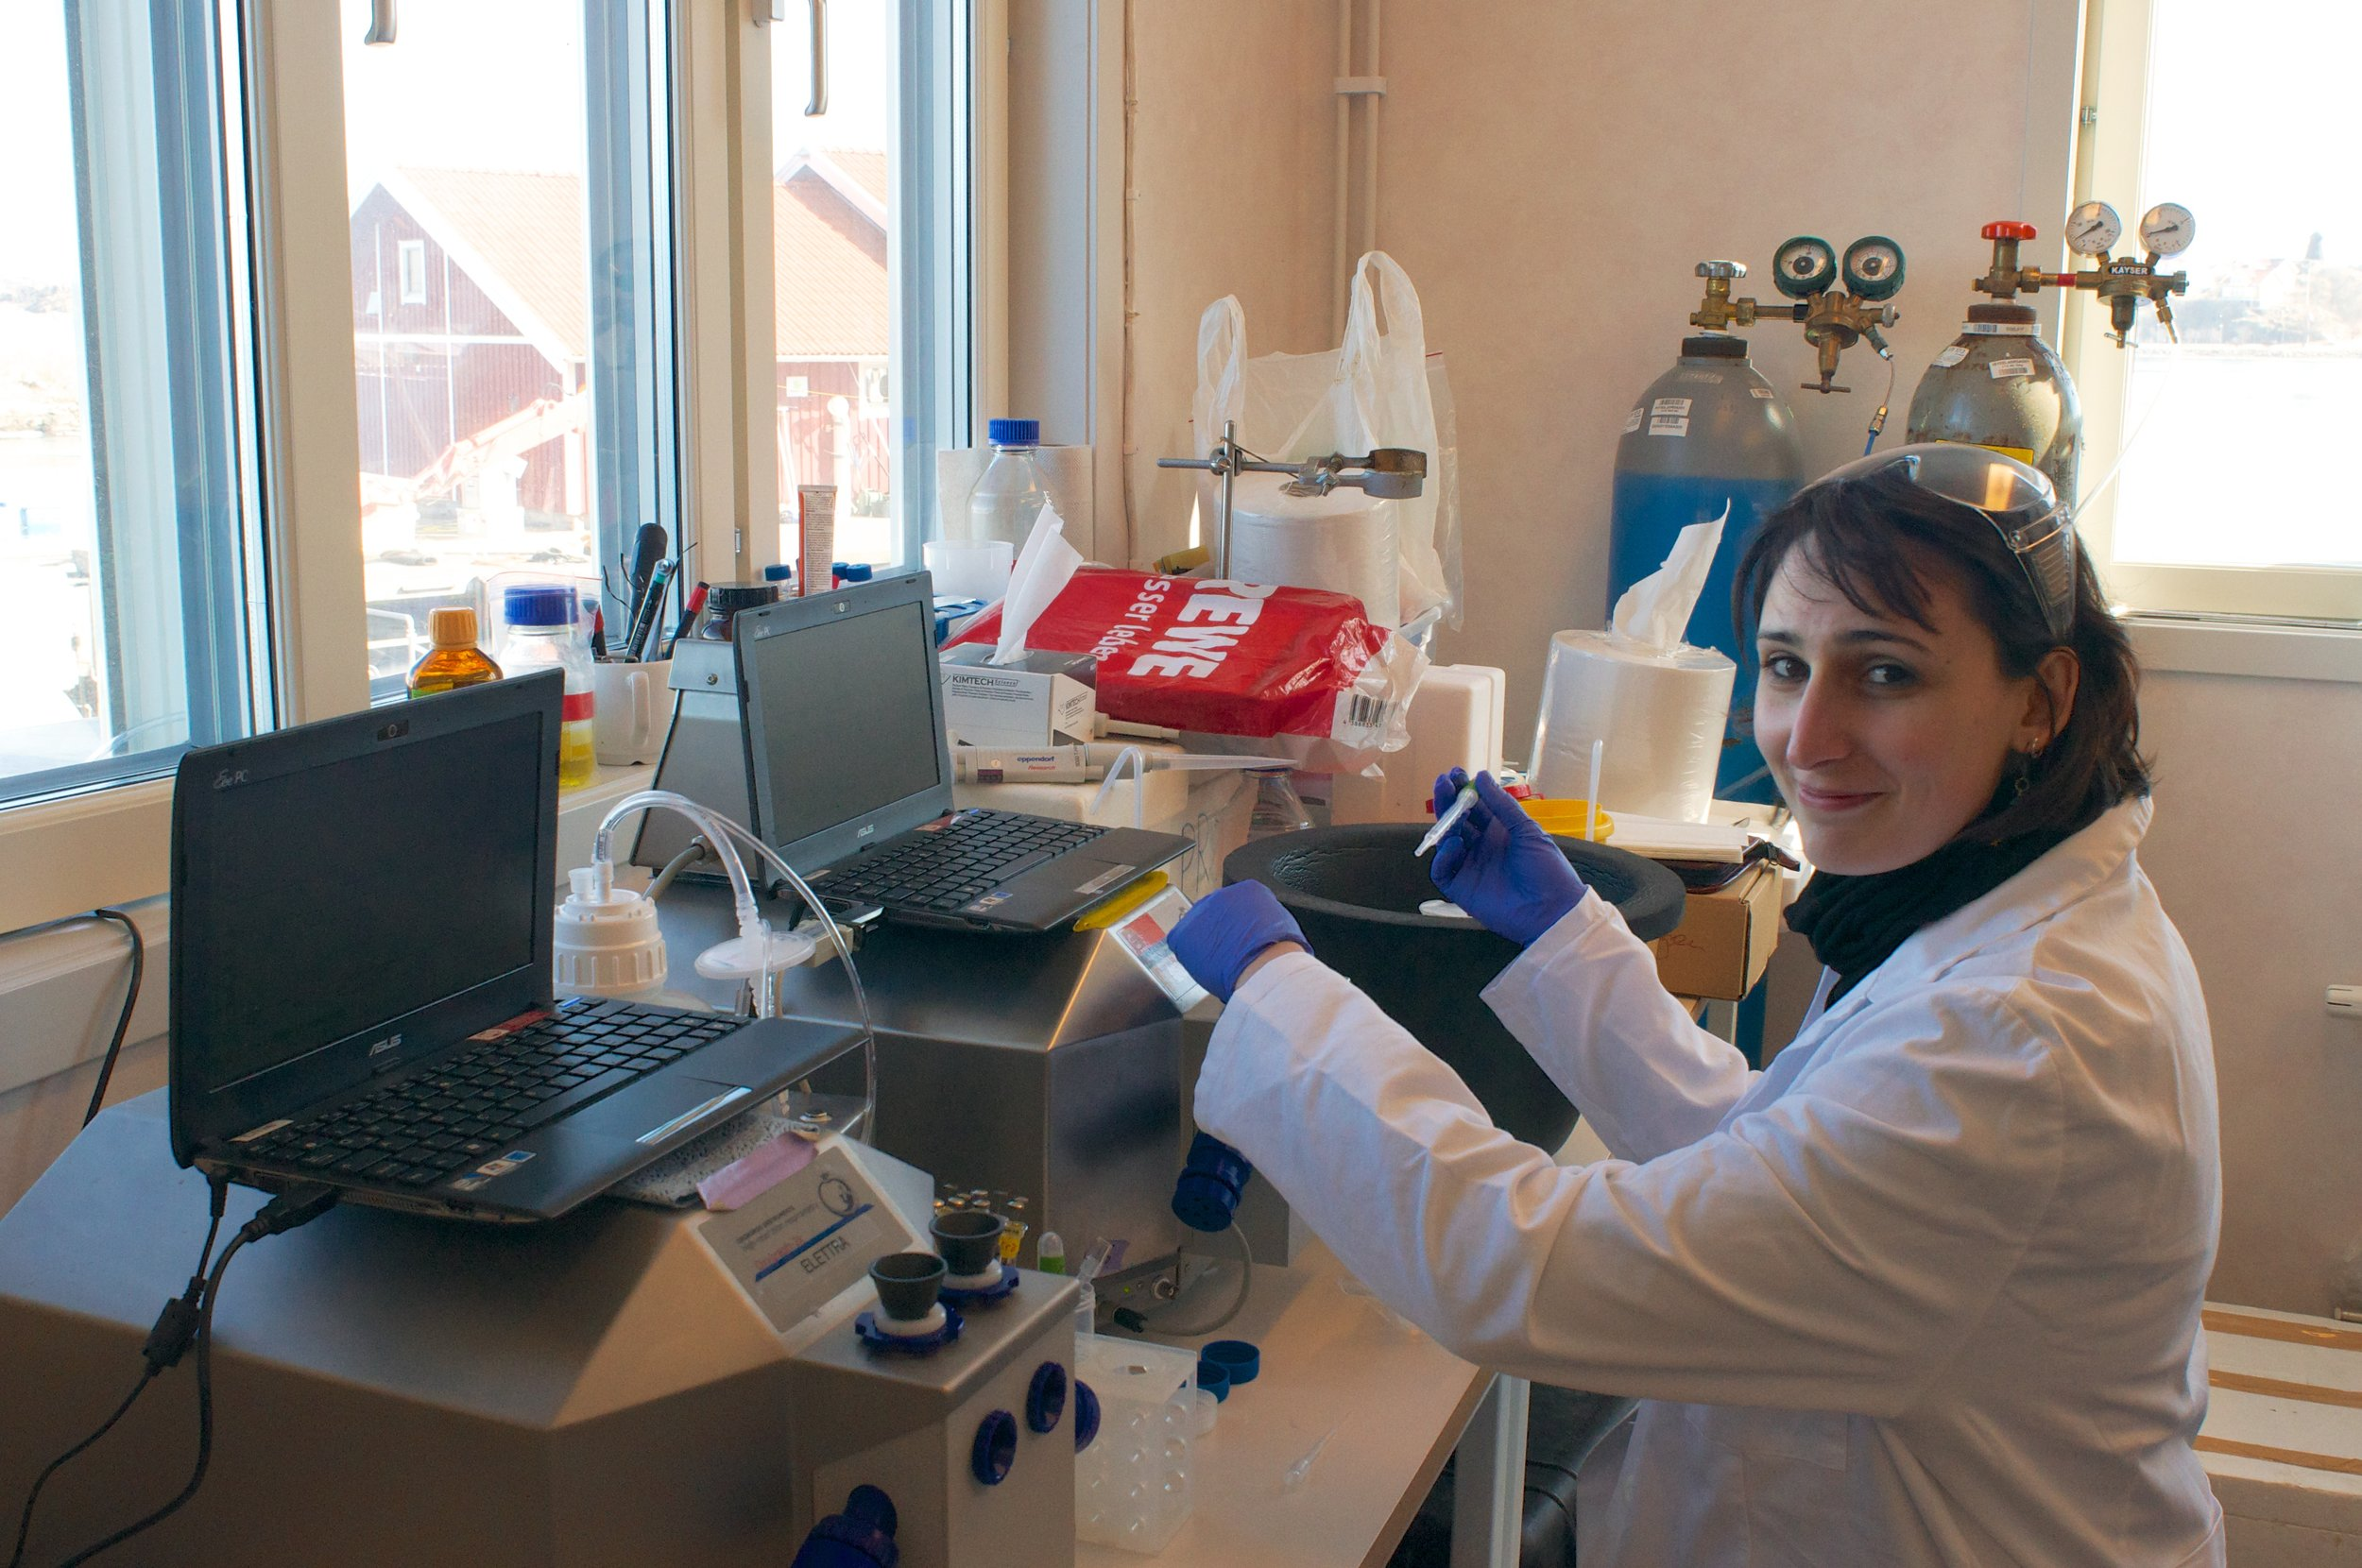 TO THE LABORATORY - Elettra tests the mitochondrial function of Atlantic cod with high-resolution respirometry. Photo: Elettra Leo